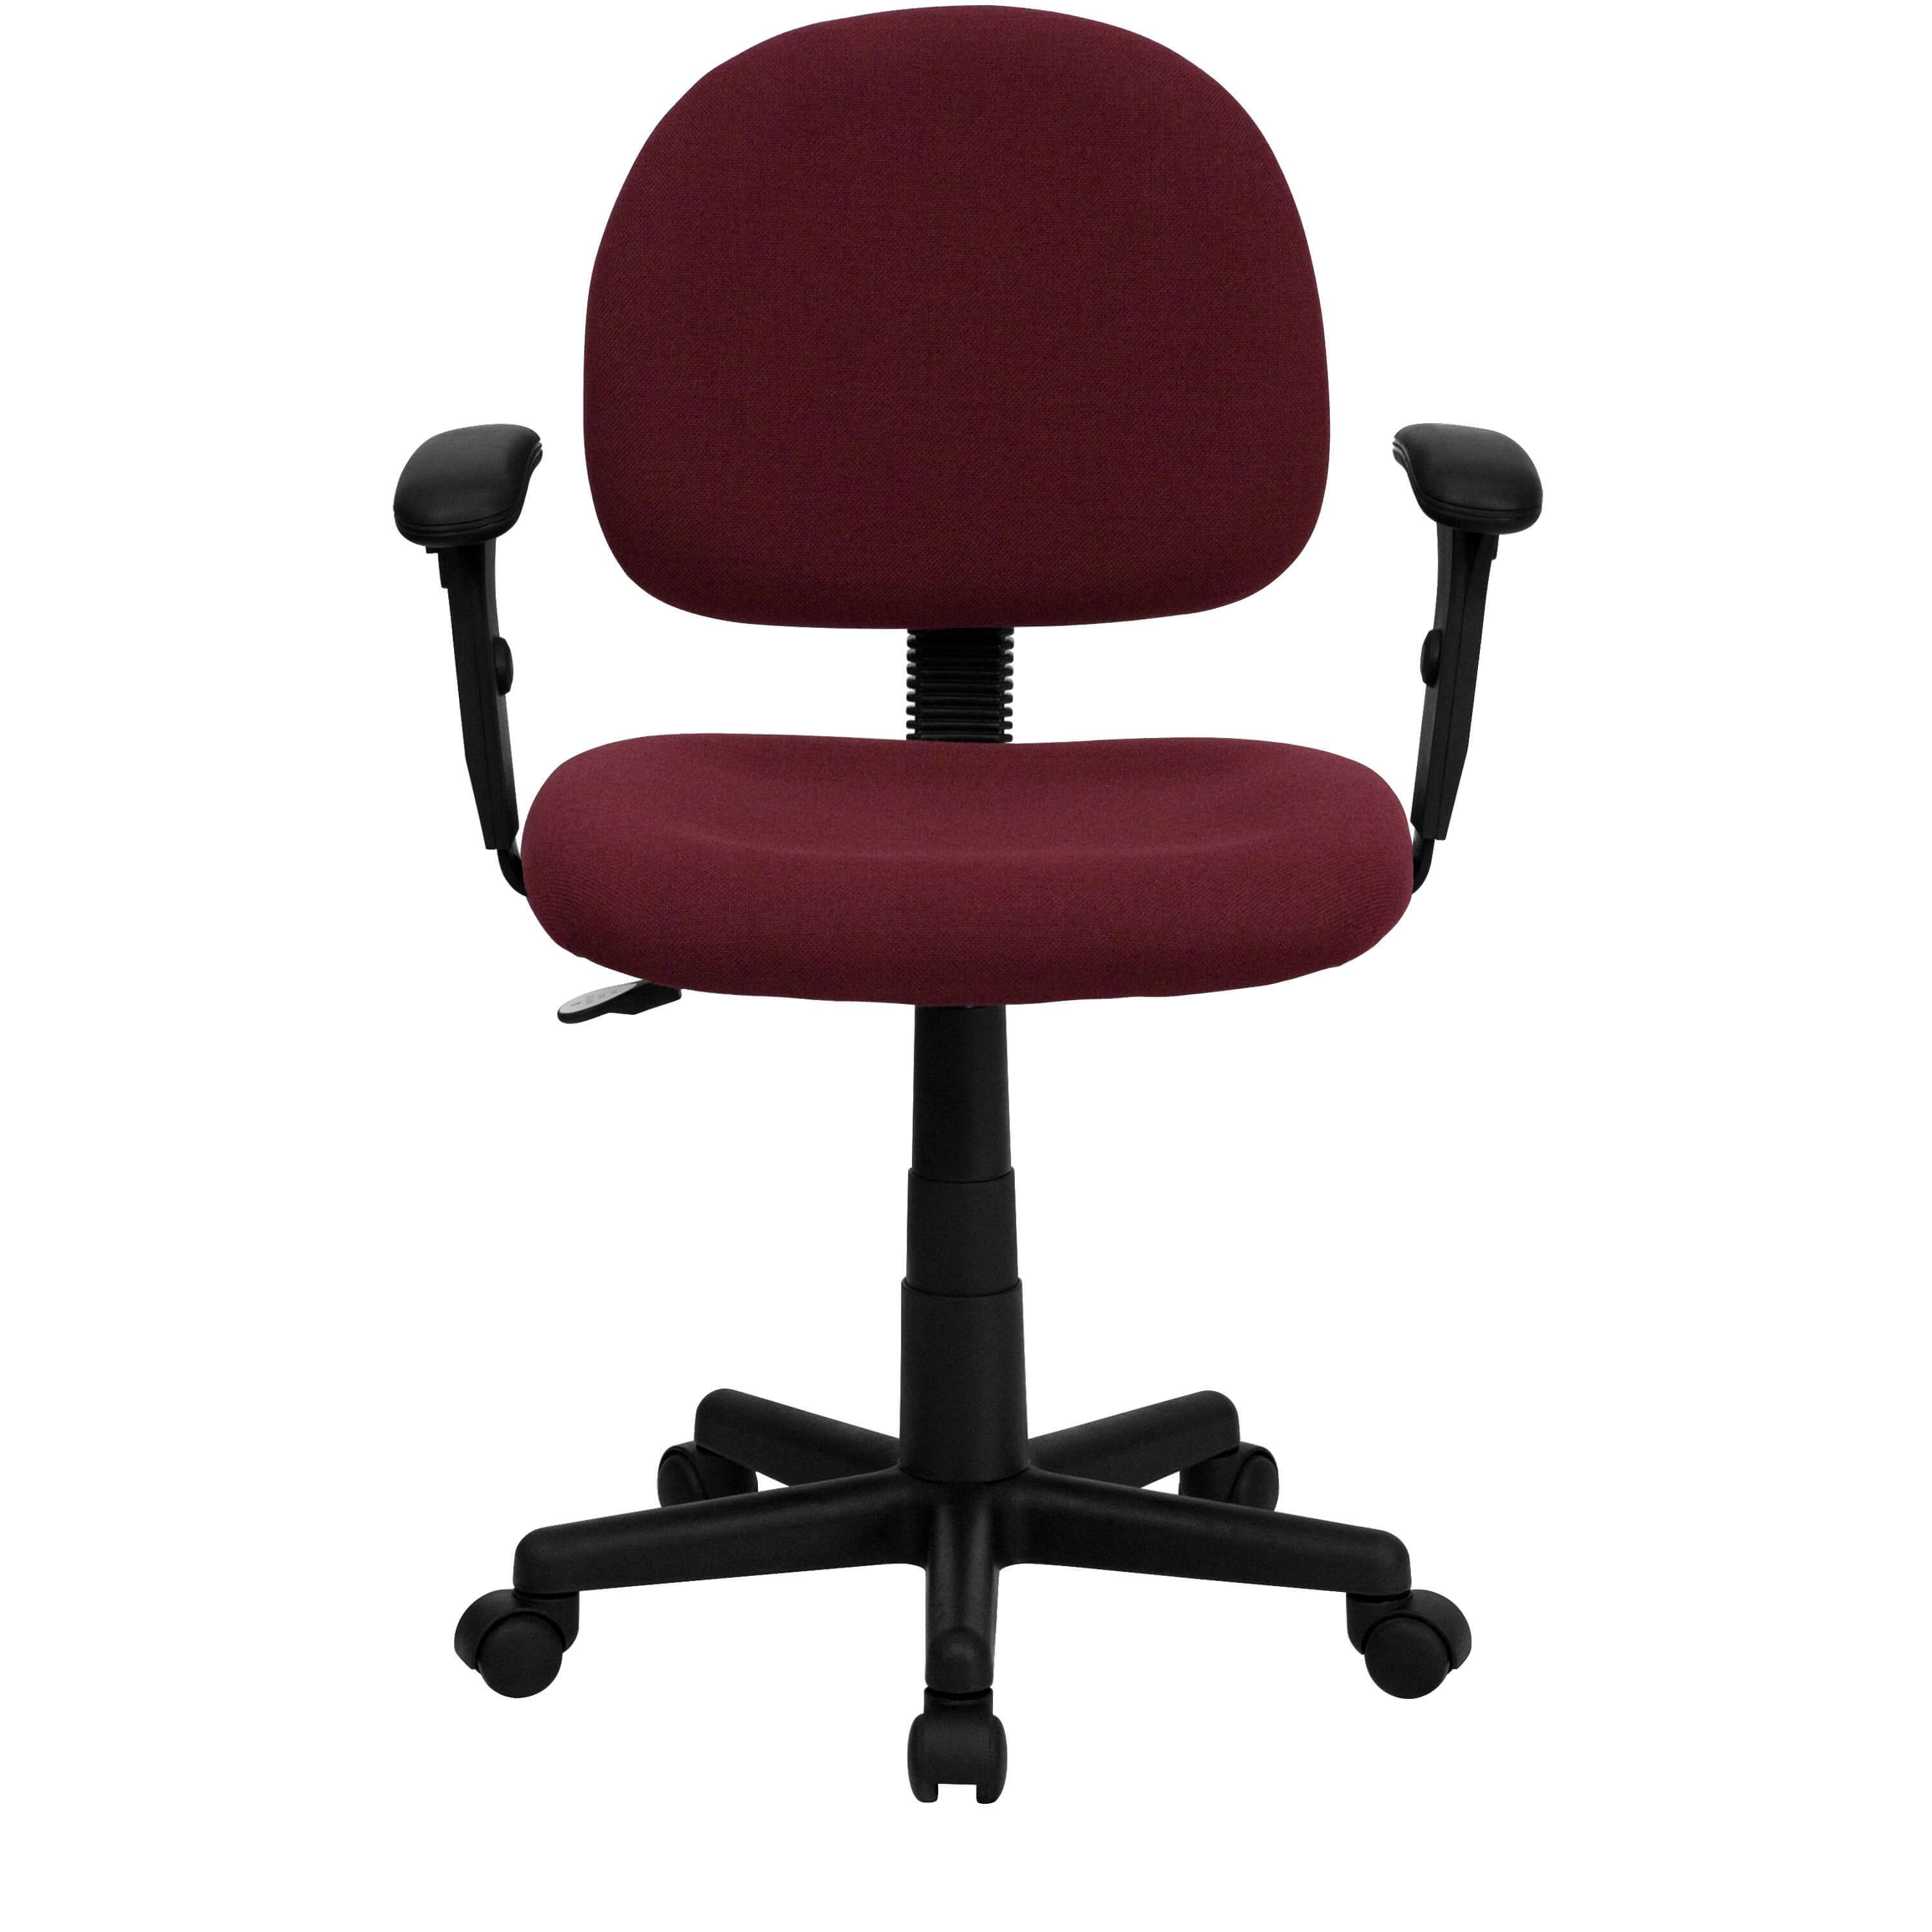 Cool desk chairs CUB BT 660 1 BY GG FLA